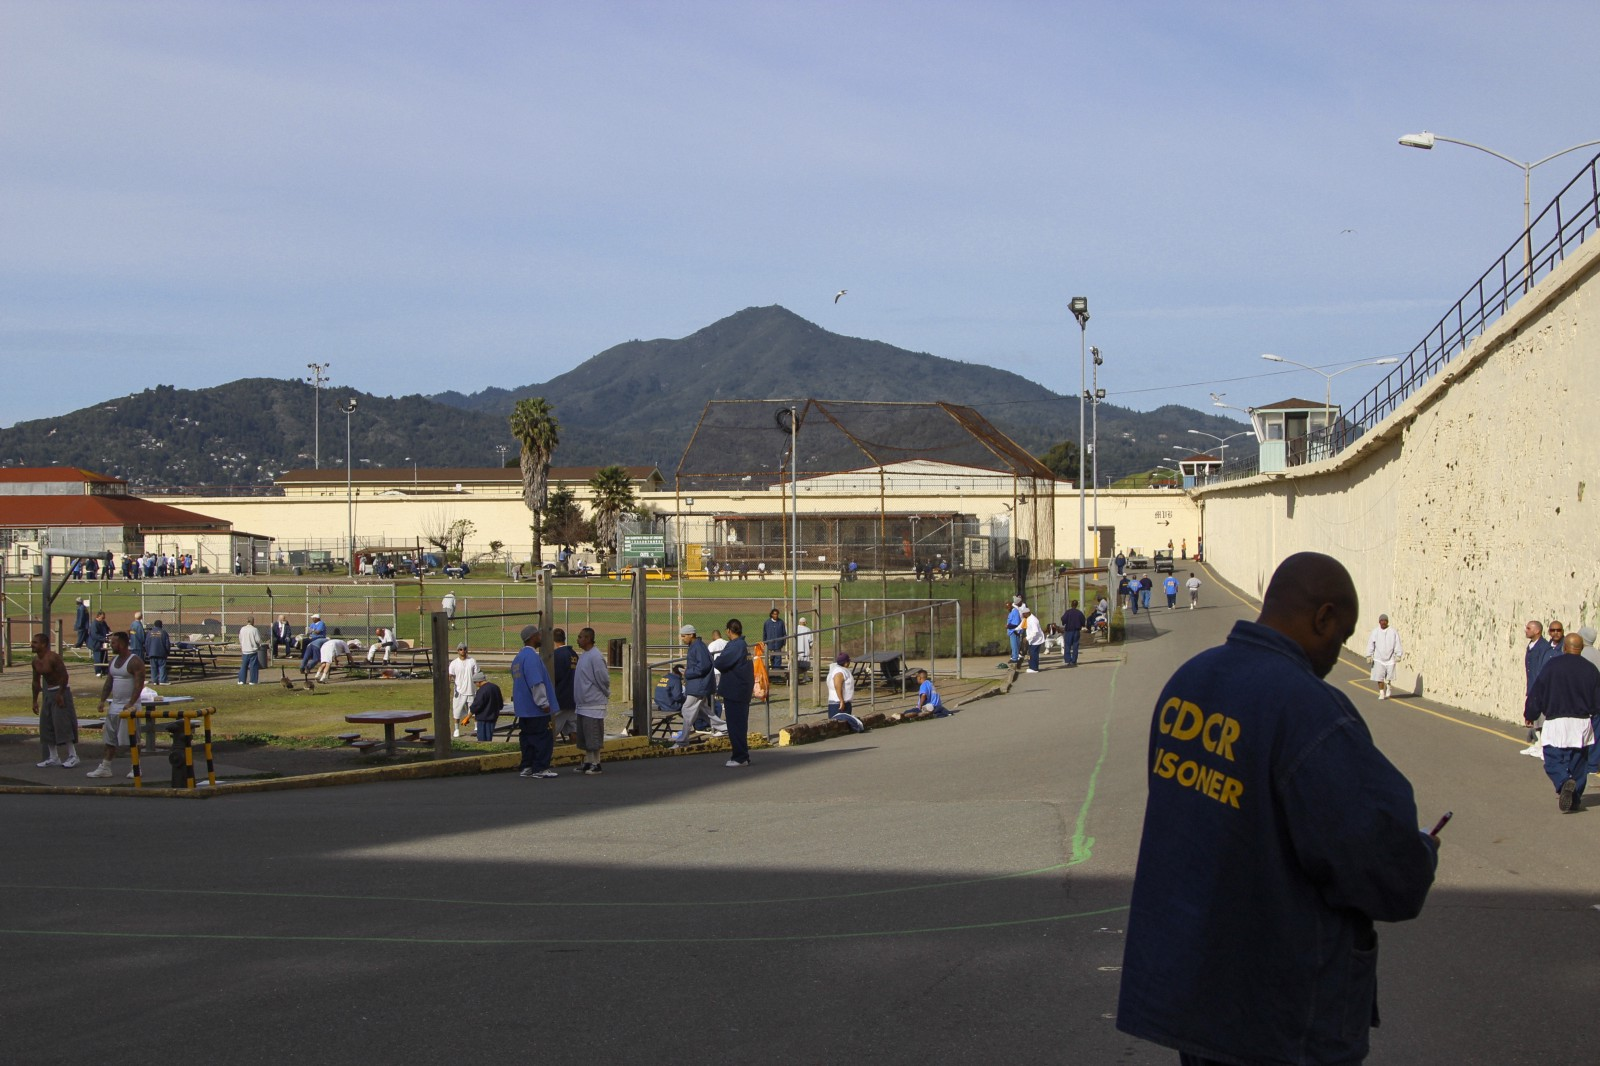 Learning Behind Bars >> Meet The San Quentin Inmates Who Are Learning To Code Behind Bars